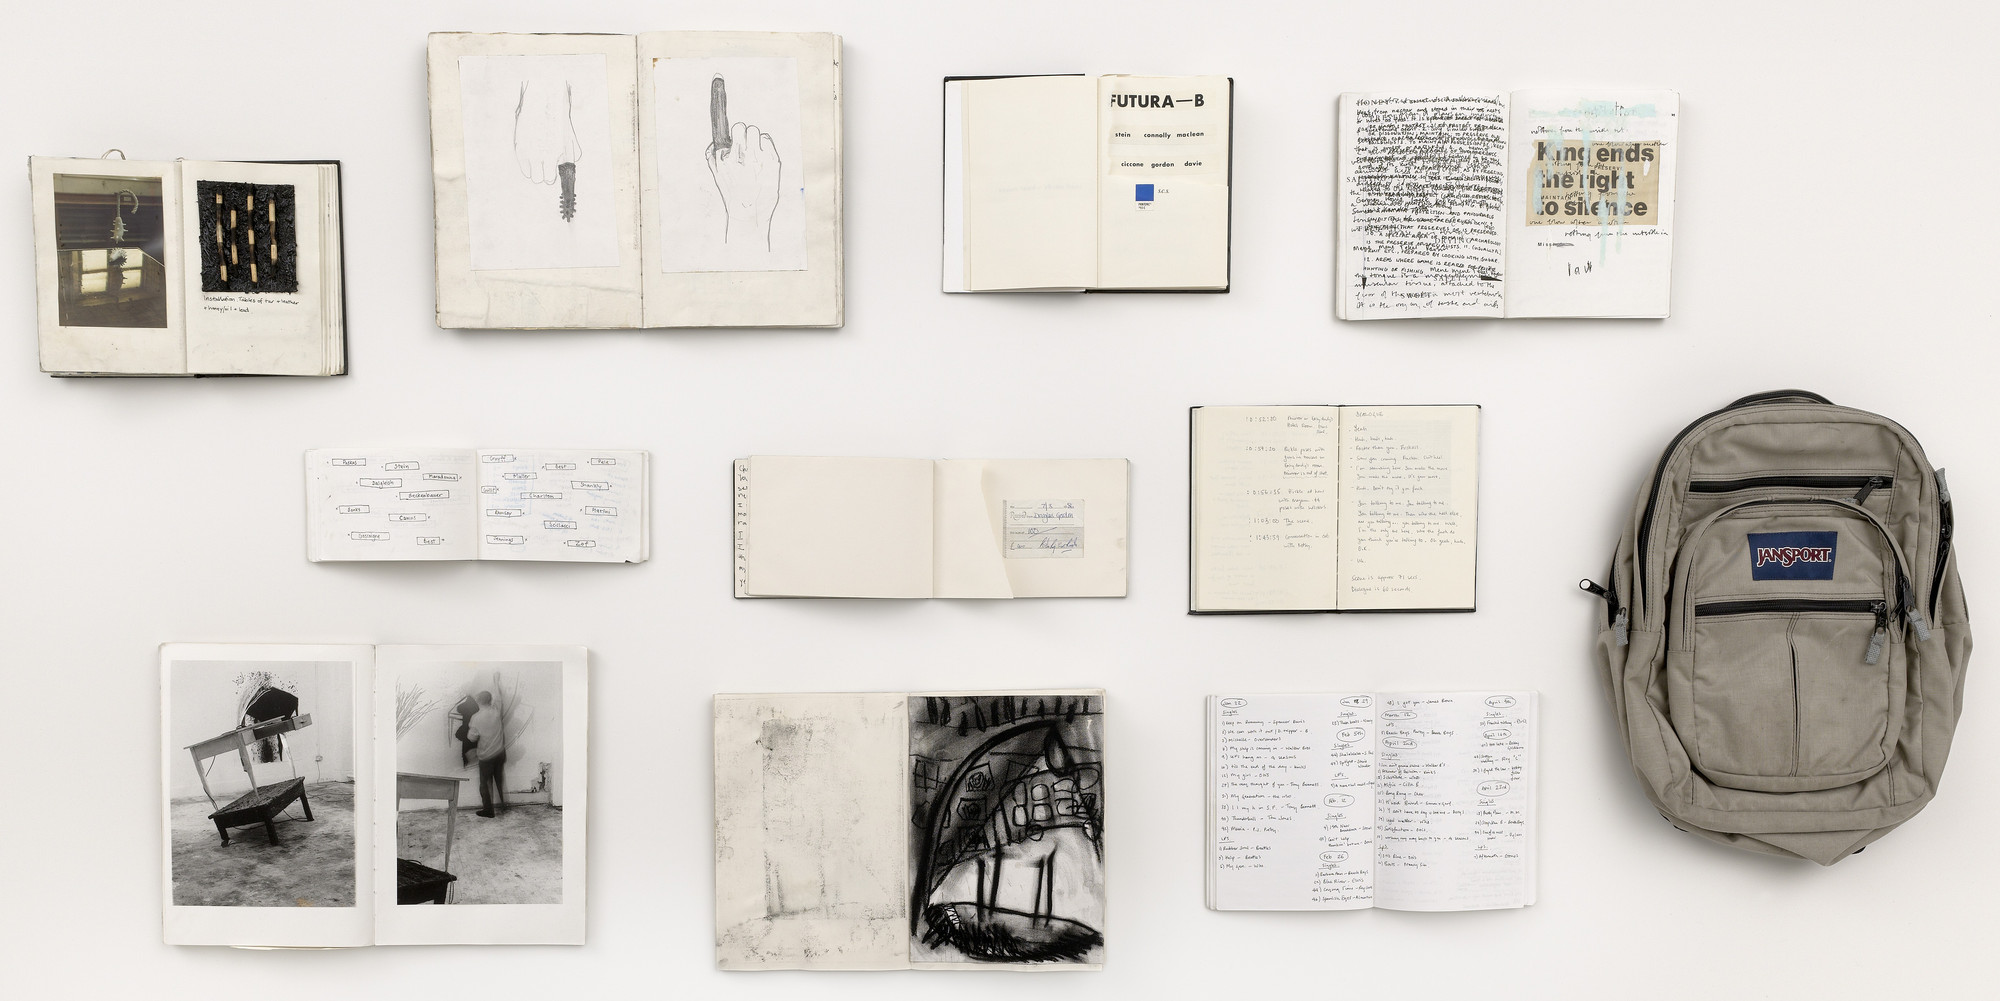 Douglas Gordon. Memoirs, 1988-1990. (1984-90)